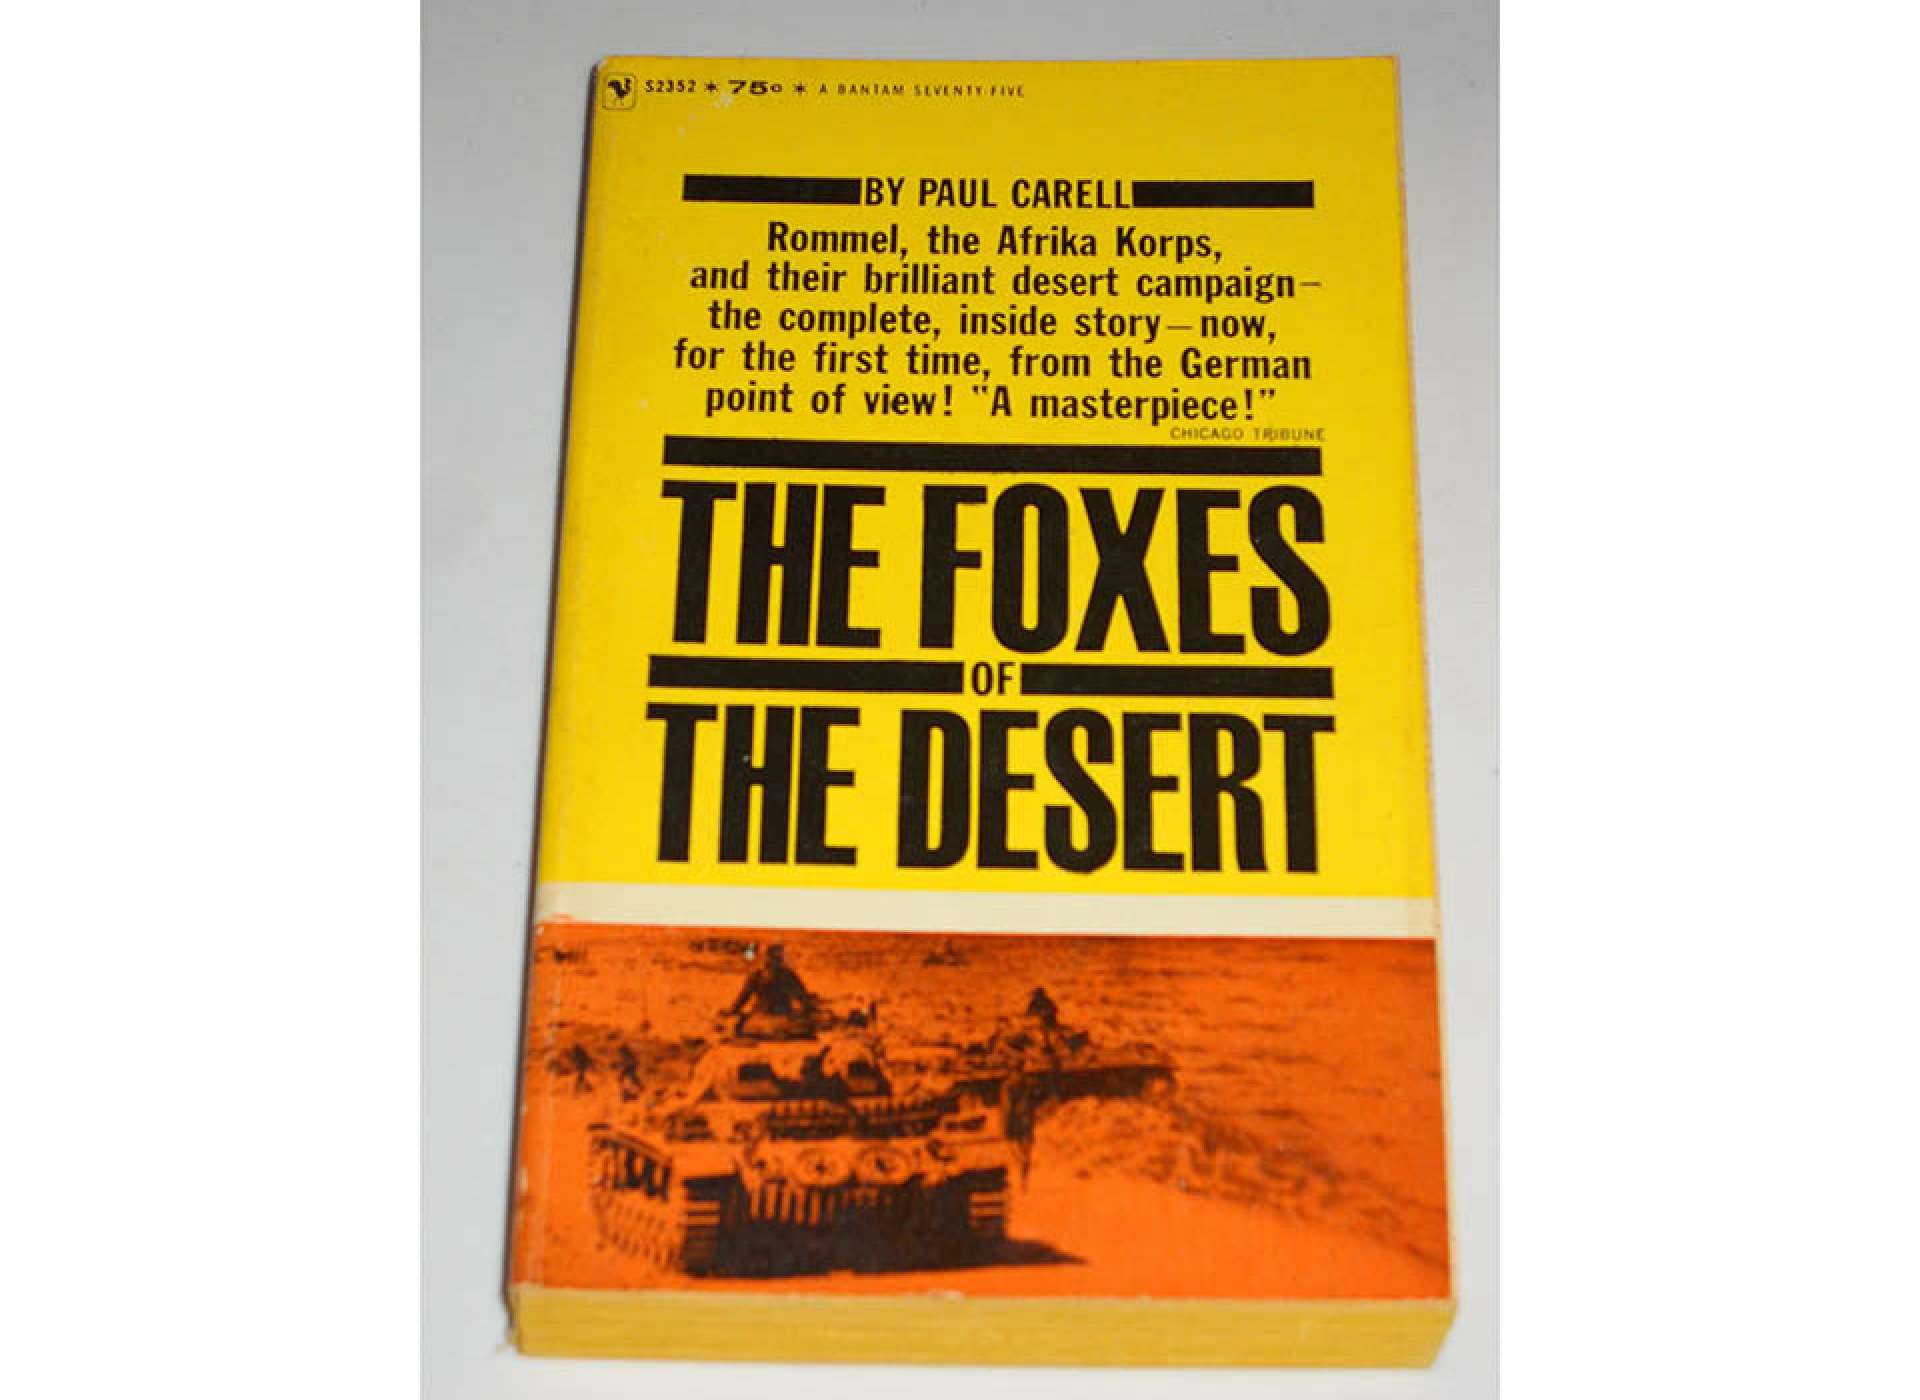 The Foxes of the Desert. Courtesy of Amazon.com